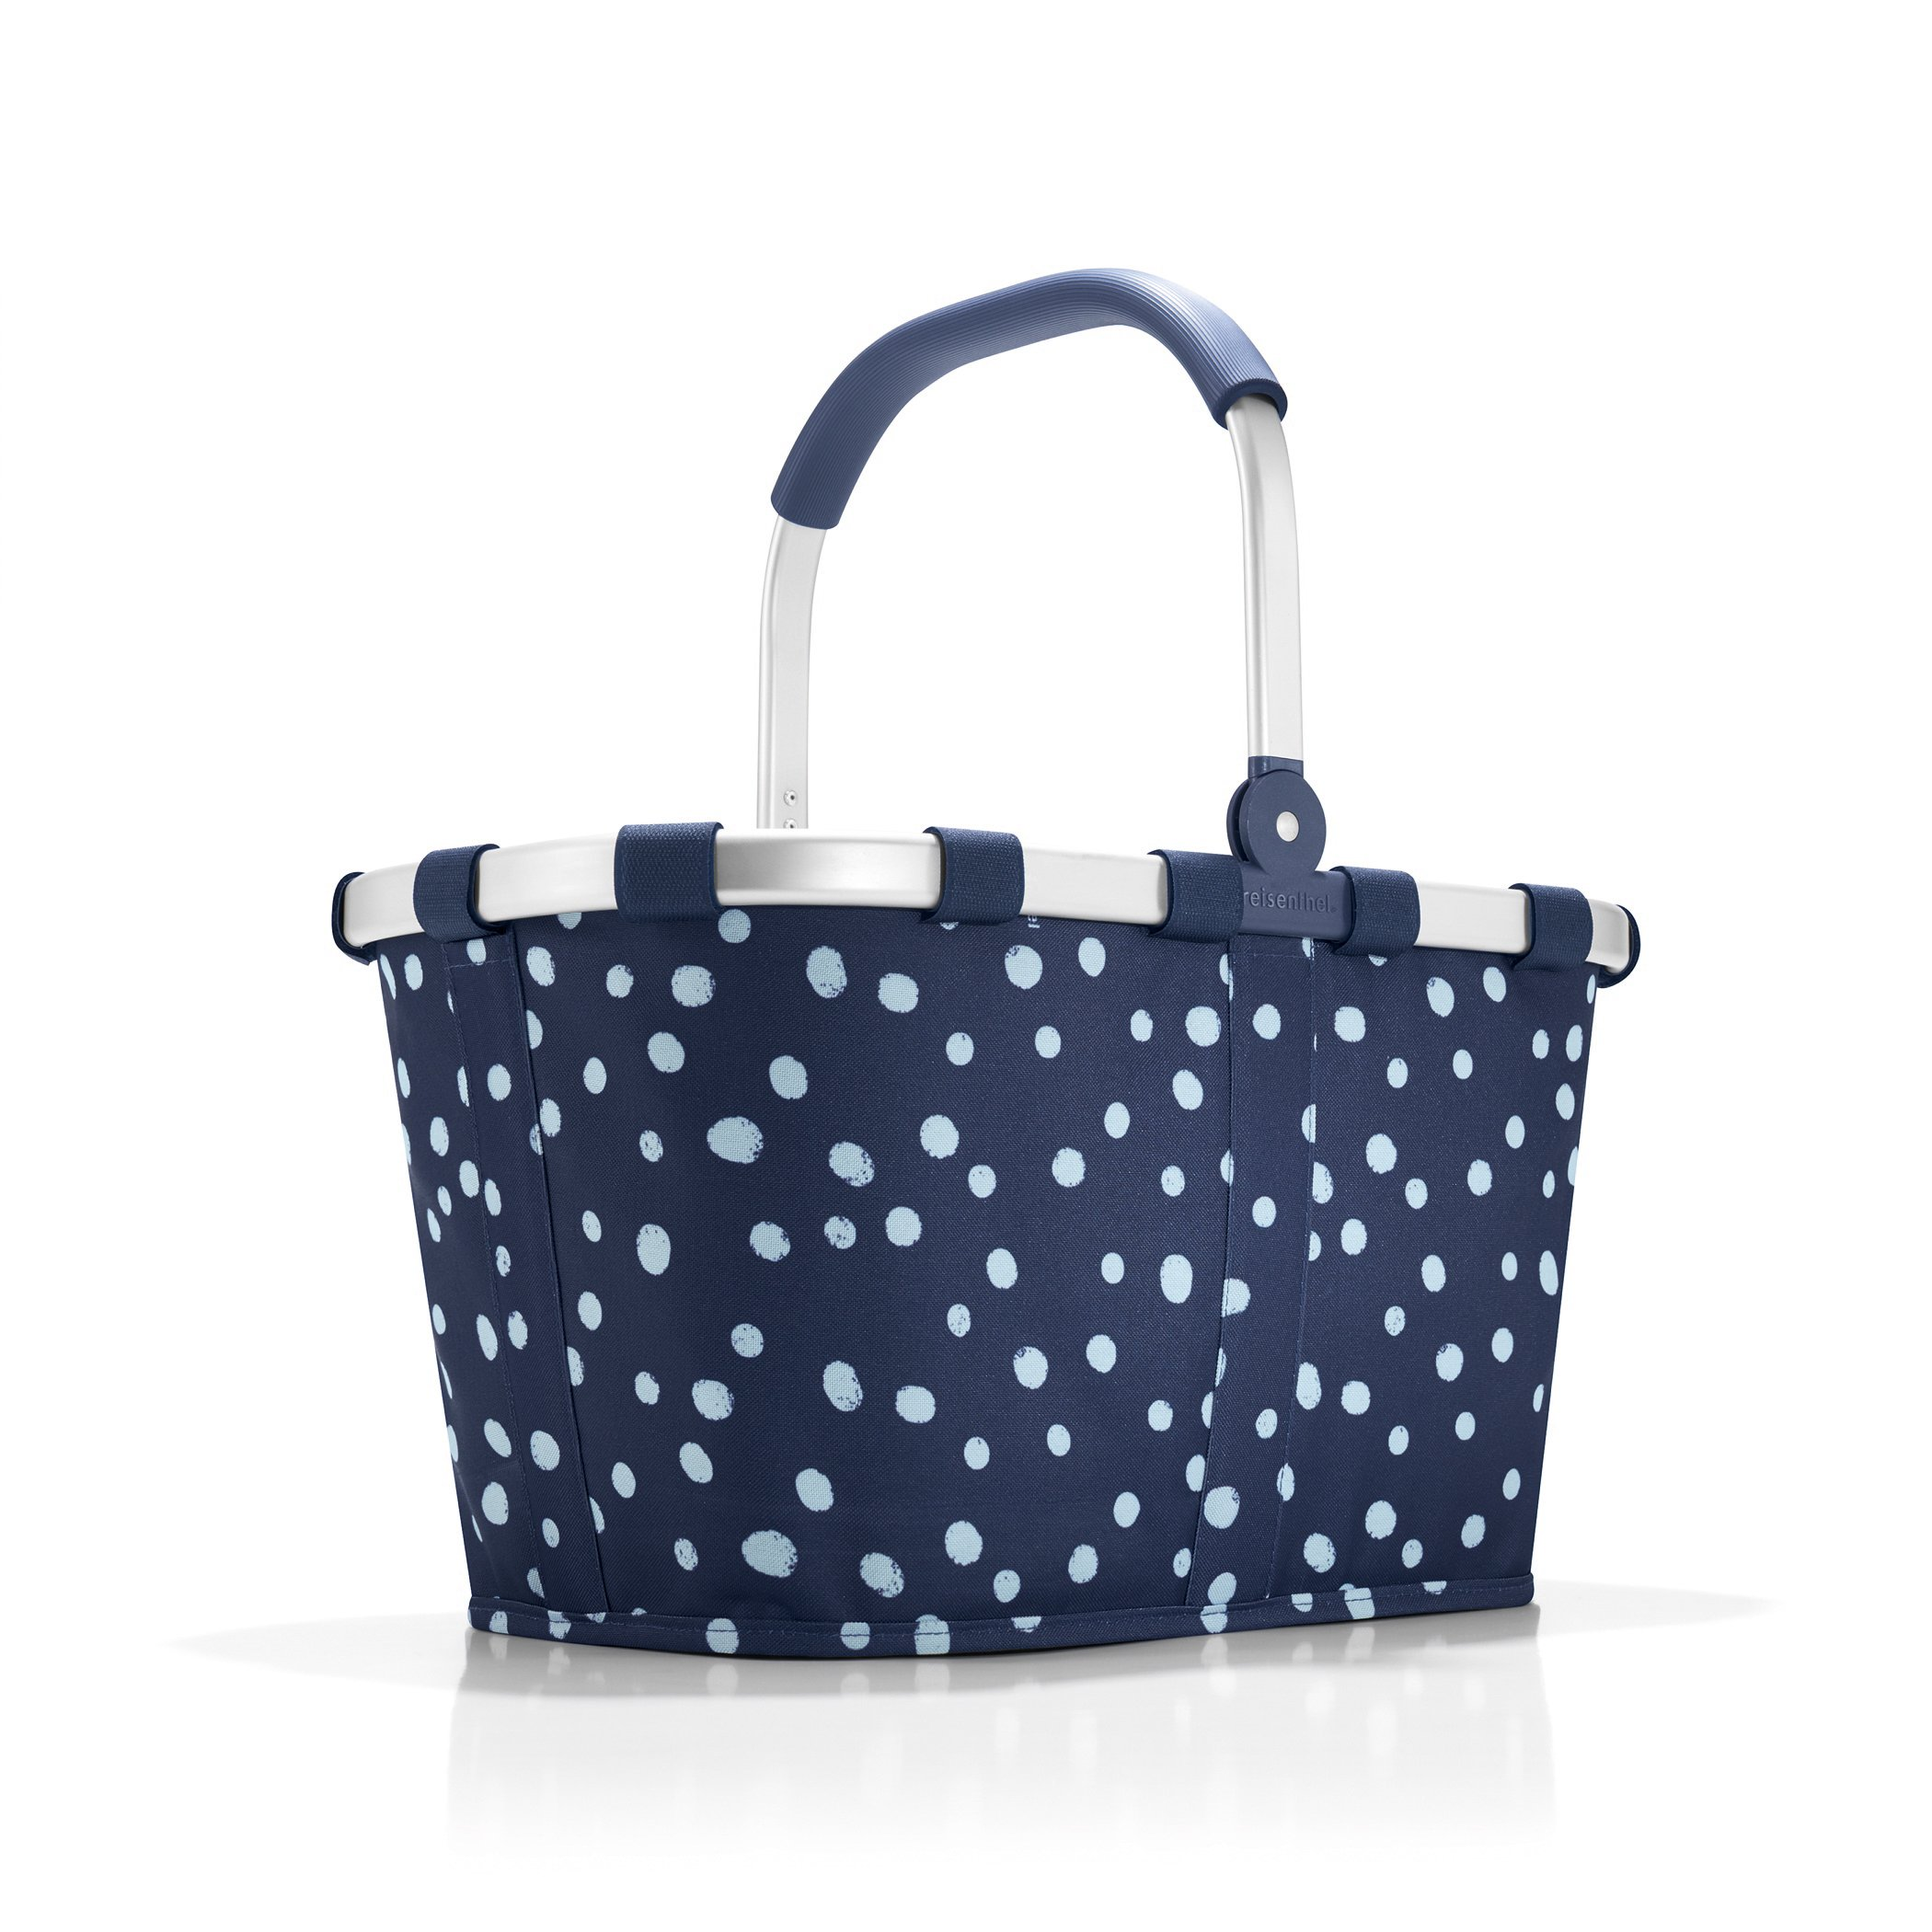 reisenthel Carrybag Fabric Picnic Tote, Sturdy Lightweight Basket for Shopping and Storage, Spots Navy